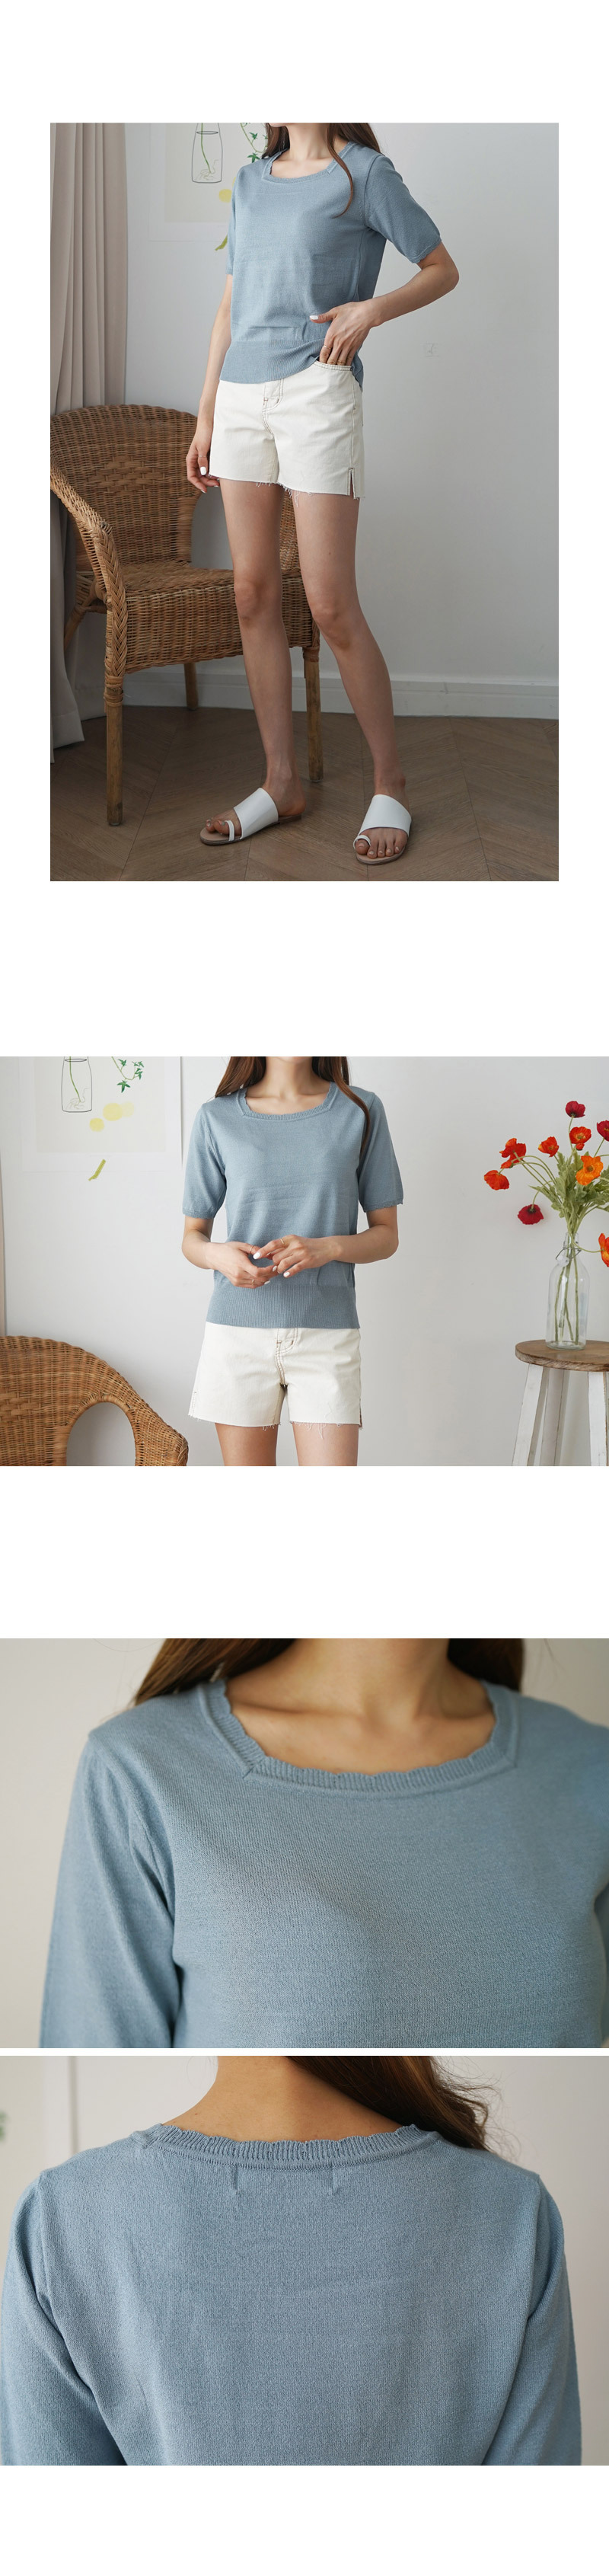 Kerry Square Short Sleeve Knit